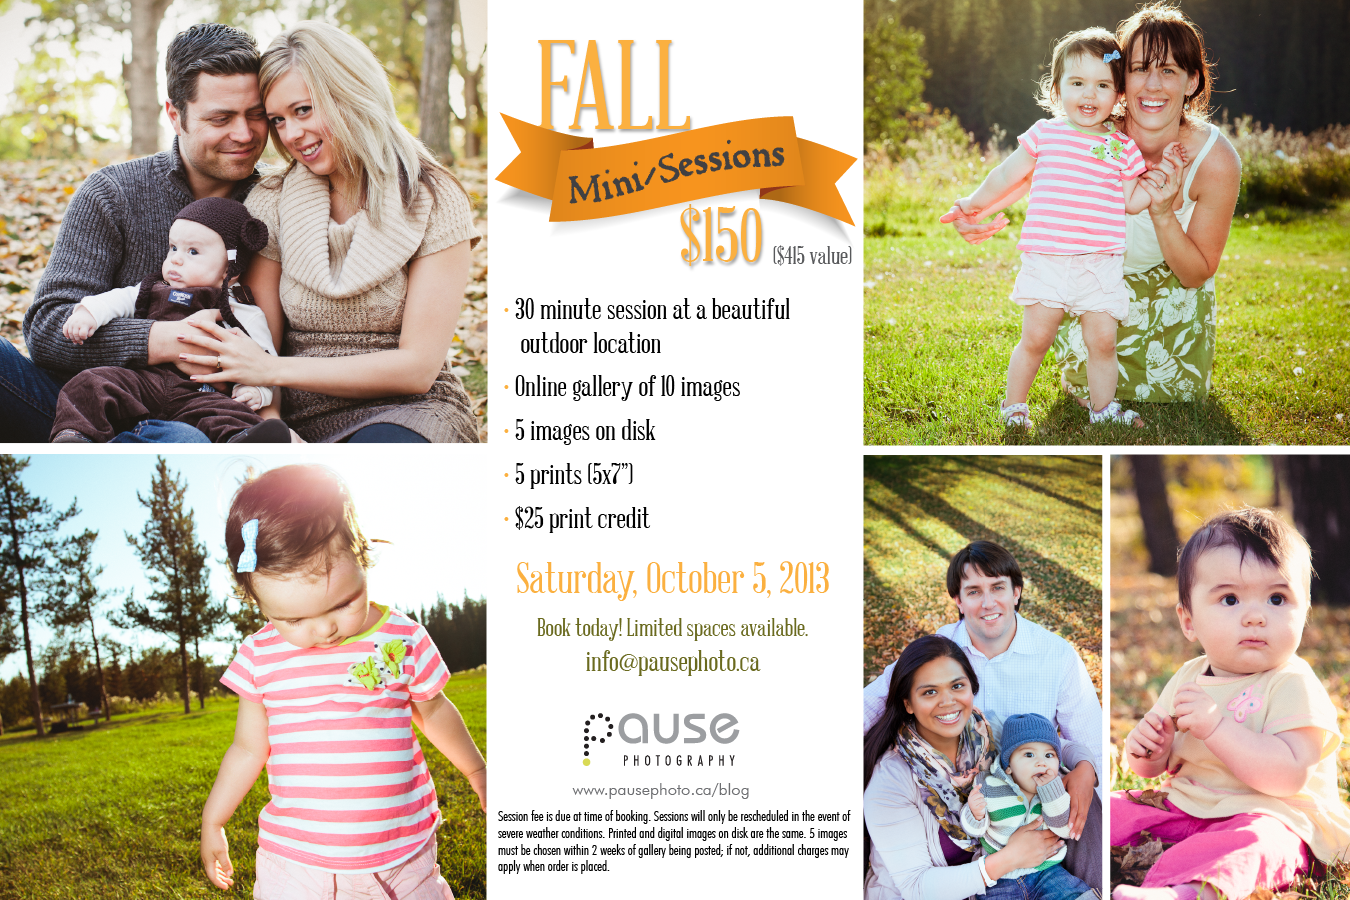 2013 Fall Mini Sessions